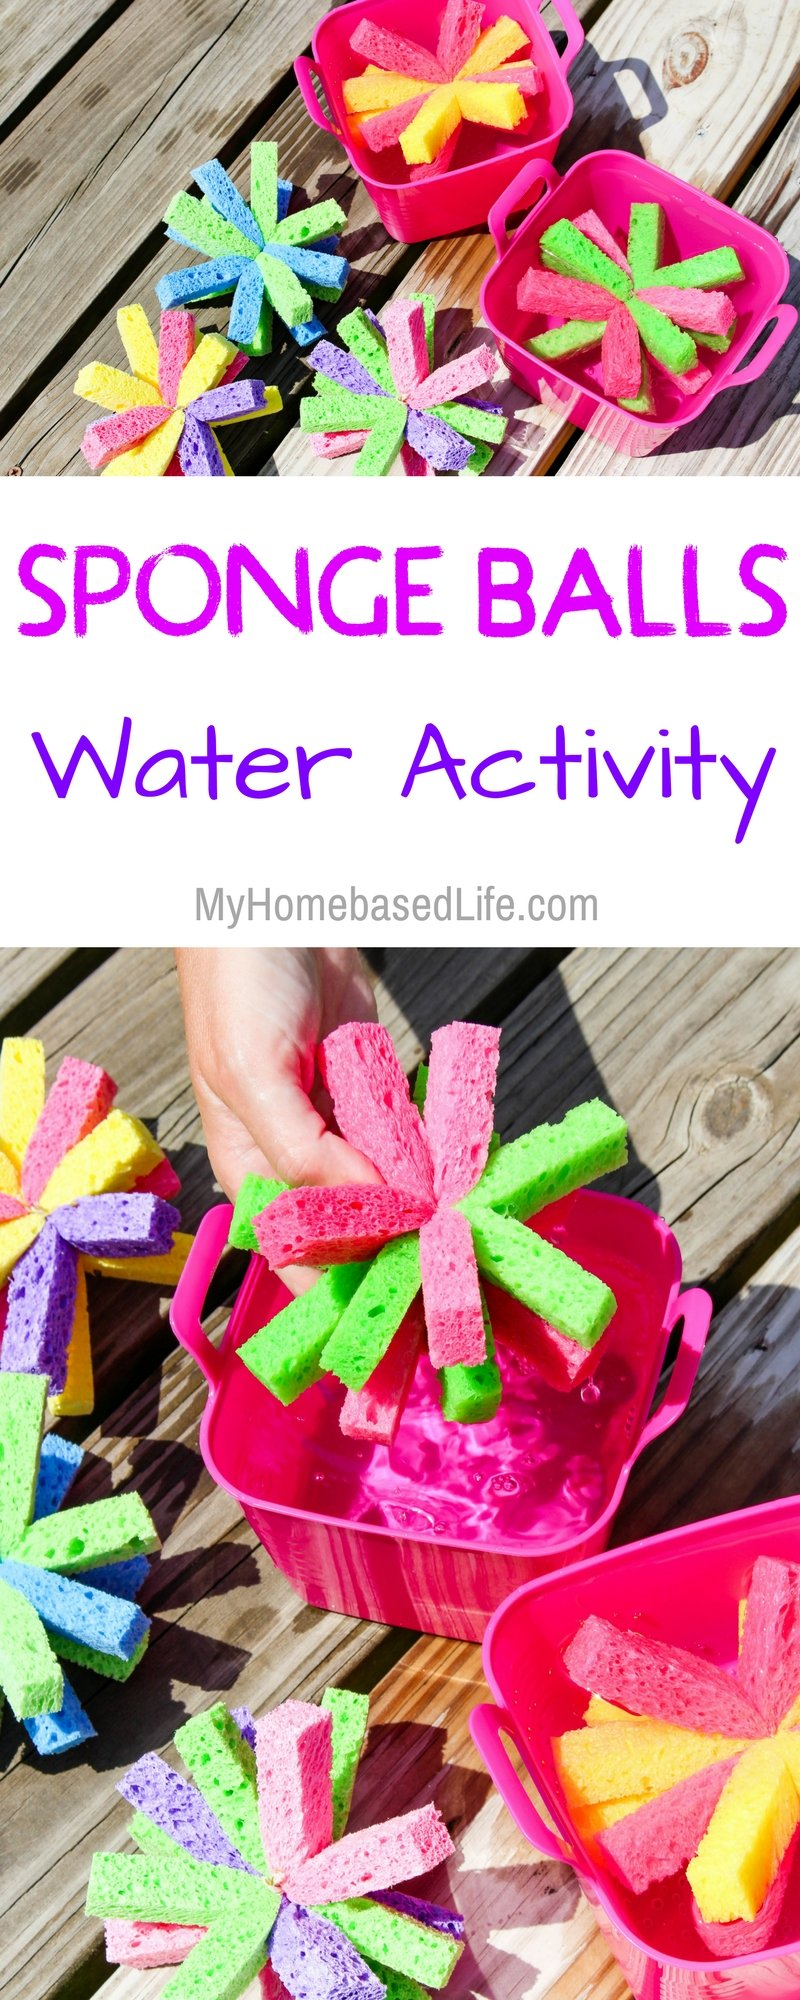 Summer Water Games just got more exciting! Sponge Soaker Balls are the perfect kid's summer DIY. Super simple and guaranteed a great time. #kids #summer #wateractivity #KidsDIY #Summertime | Kids DIY | Kids Craft | Simple Kids Water Activity | Parenting | Summertime Fun | Family Fun | Easy Water Activity